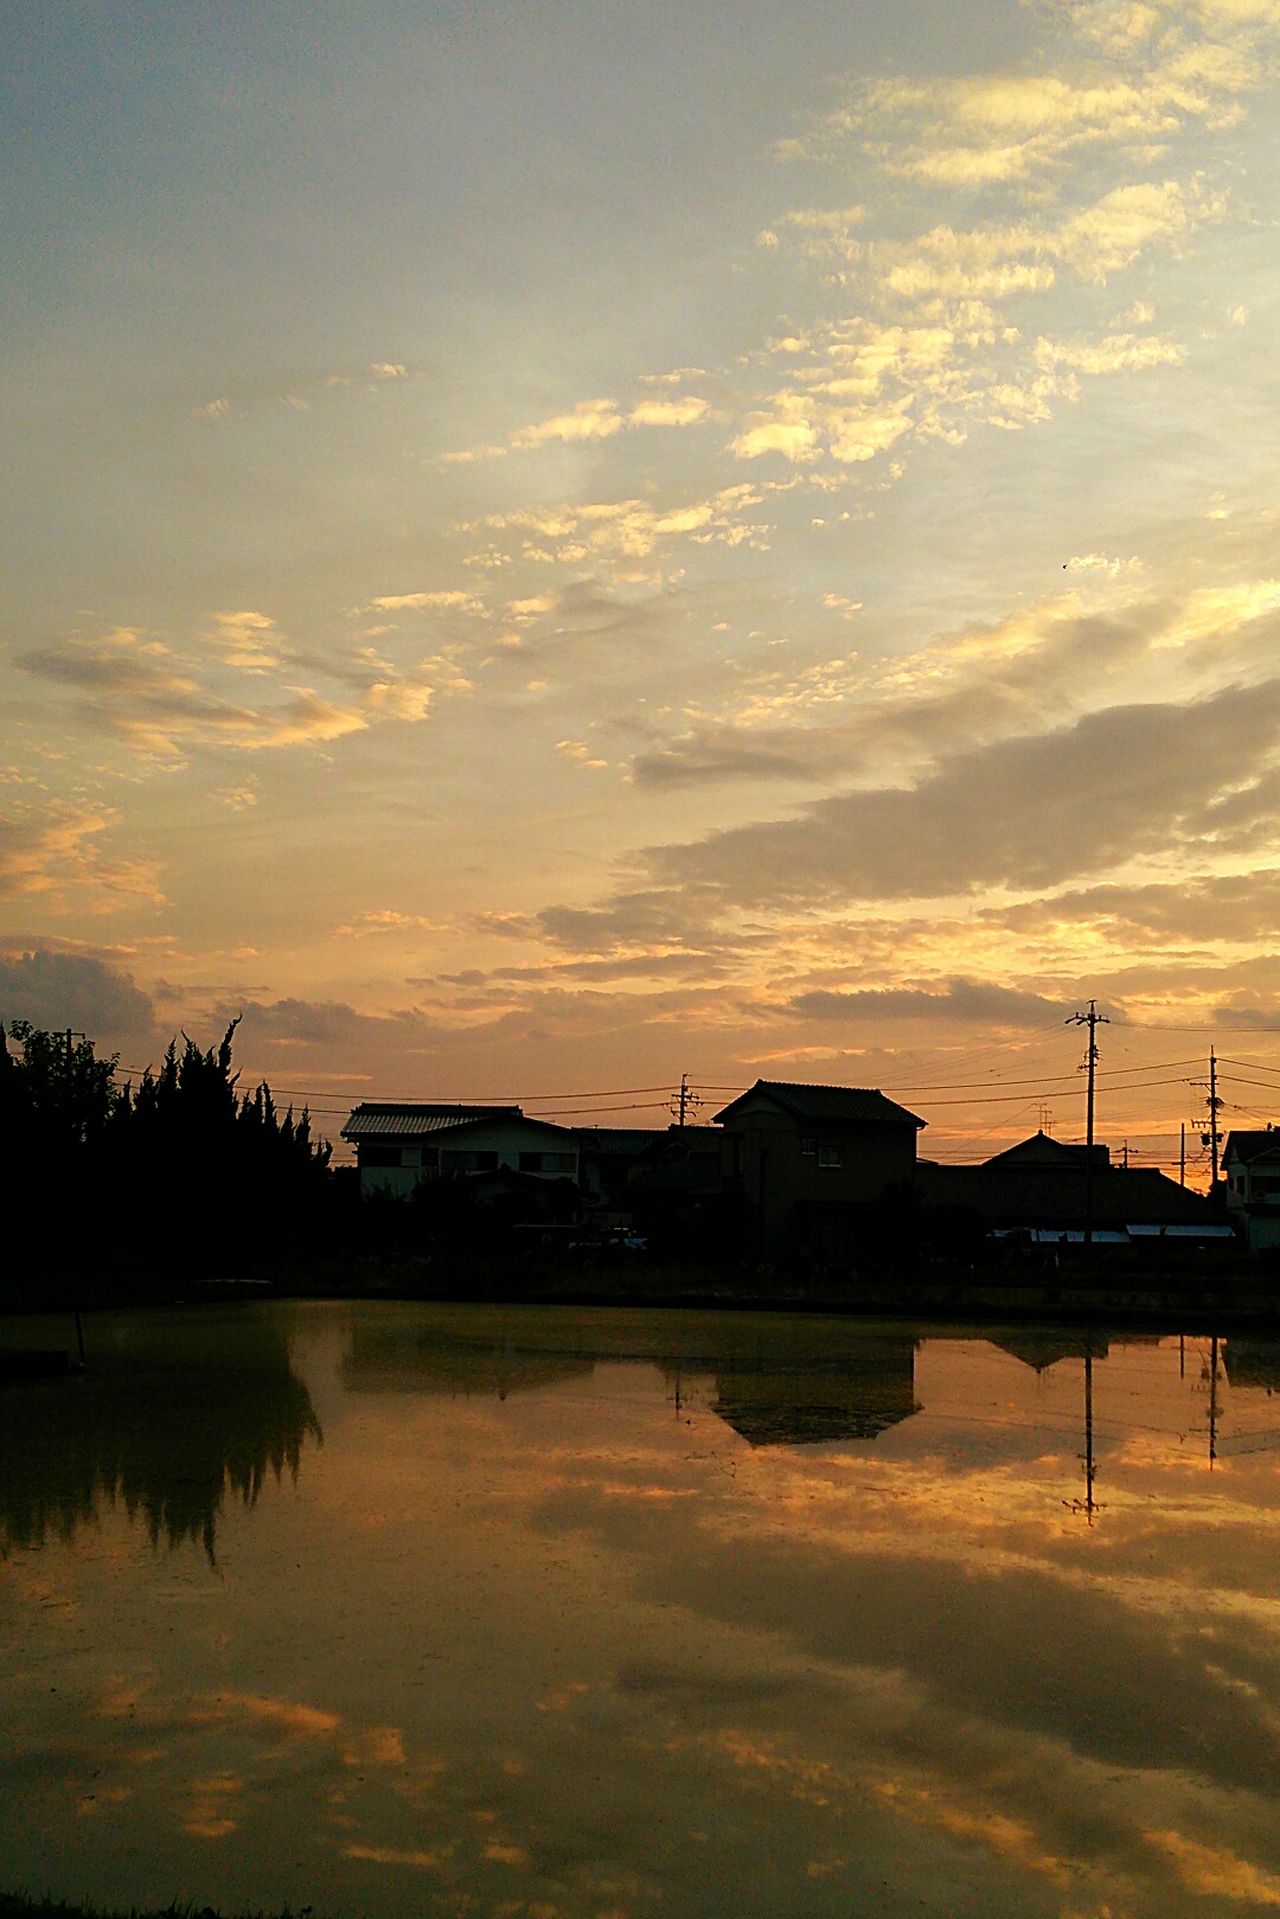 Reflection Reflections In The Water Sunset Nature View Clouds And Sky Sky Taking Photos TheWeekOnEyeEM Color Cloud Rural Rurallandscape 空 風景 景色 雲 Japan 反射 反映 EyeEm Best Shots - Nature Eyeemphotography EyeEm Nature Lover Eyeembestshot-reflection